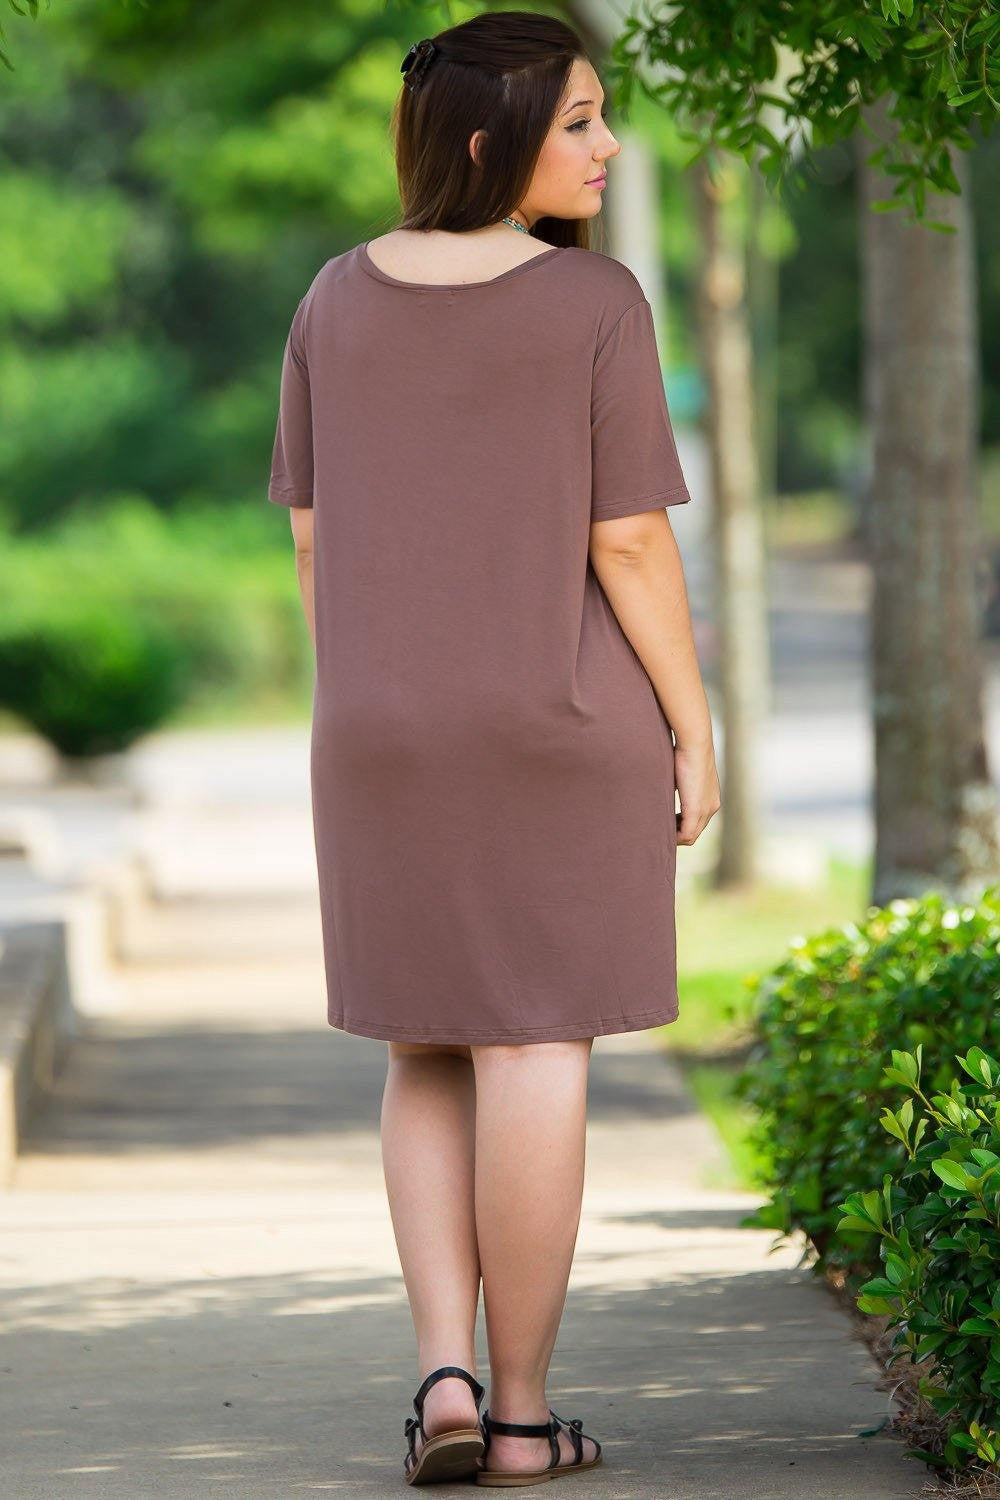 Short Sleeve Piko Dress - Brown - Piko Clothing - 2